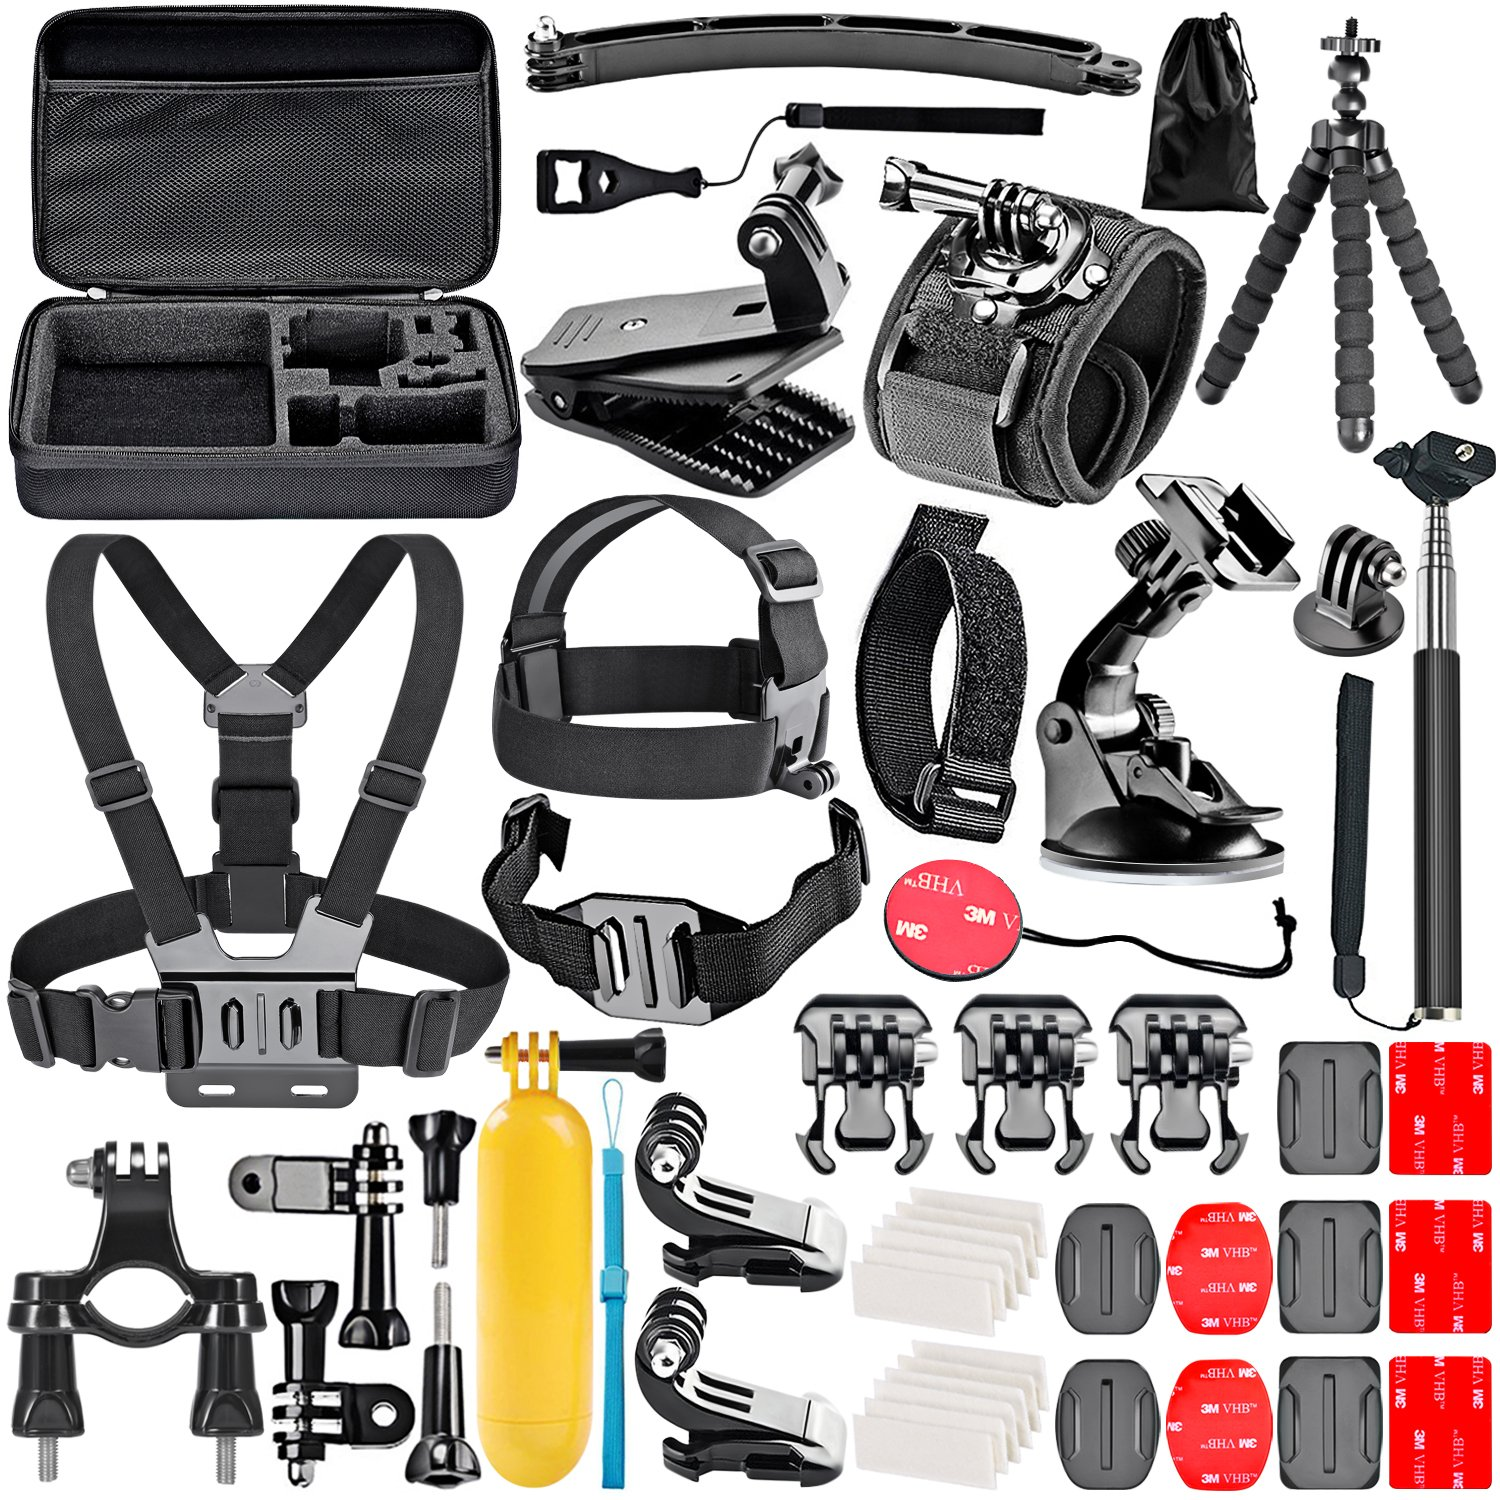 Neewer 50-In-1 Action Camera Accessory Kit for GoPro 7 GoPro Hero 6 5 4 3+ Hero Session 5 Apeman DJI OSMO Action SJ6000 DBPOWER AKASO VicTsing Rollei Lightdow Campark by Neewer